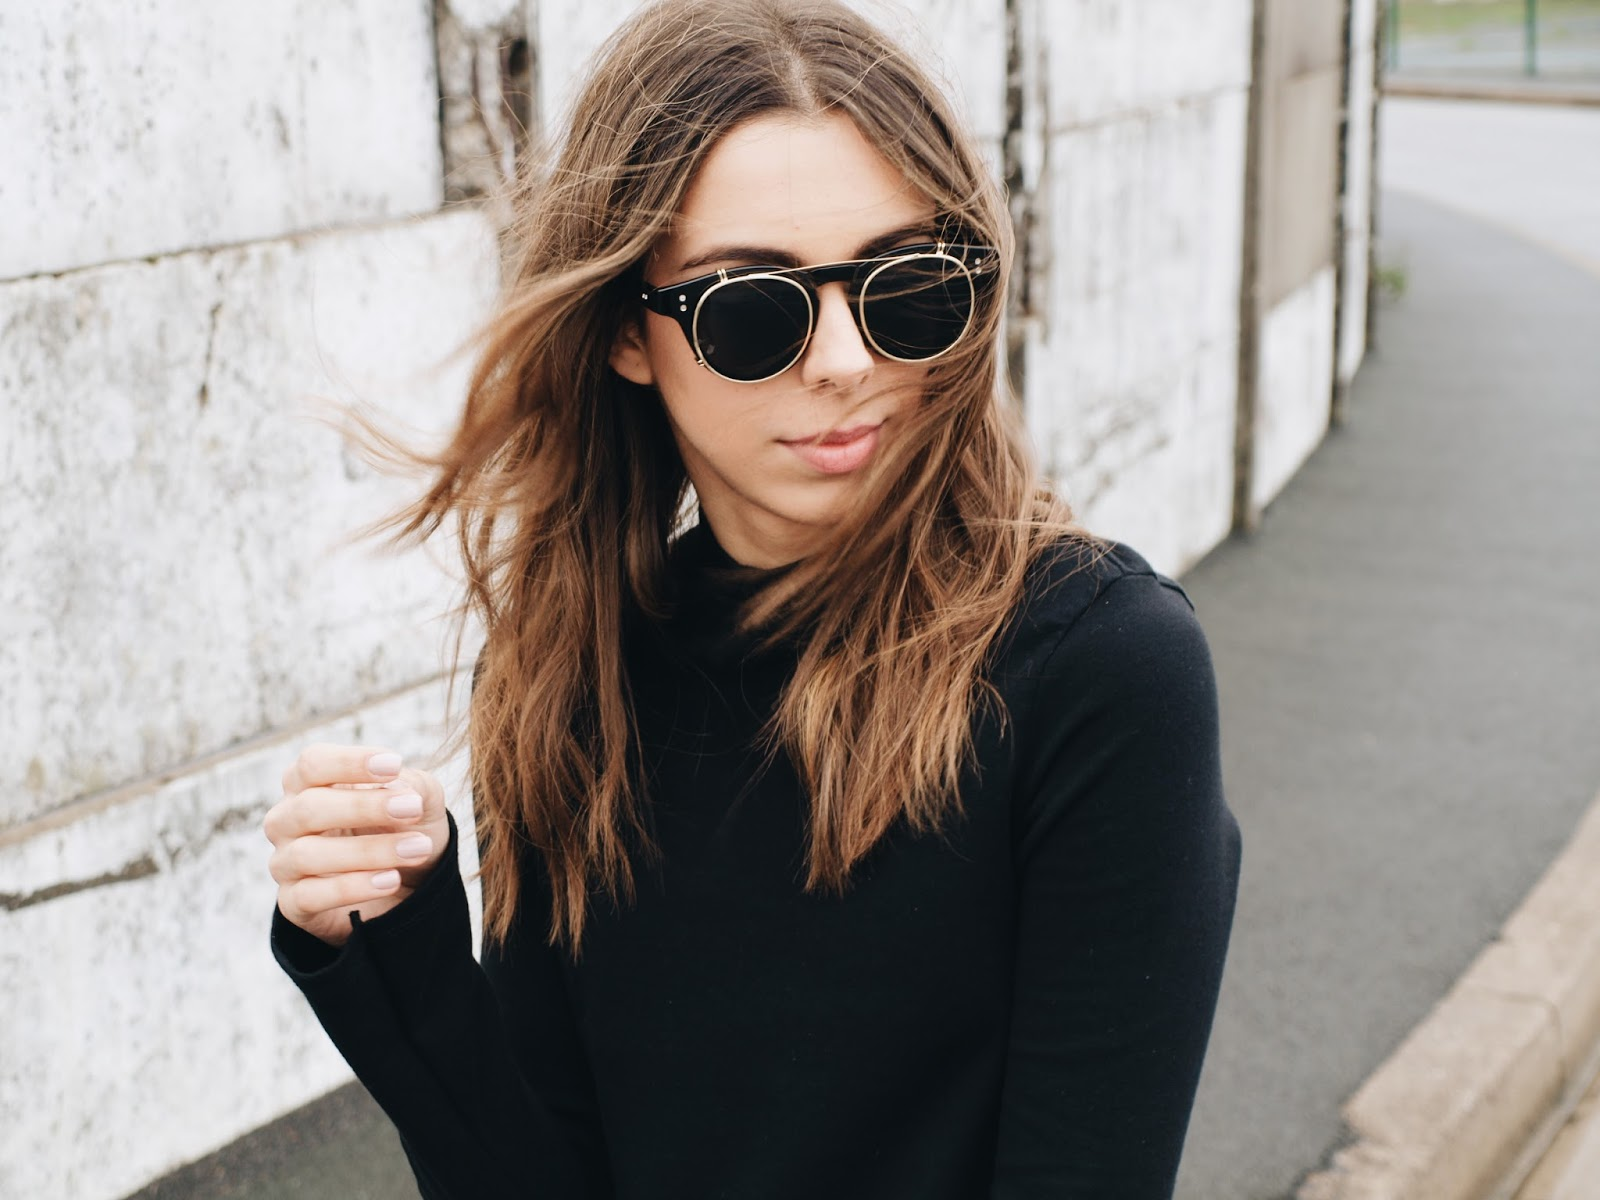 lusineàlunettes-coastalandco-hendaye-blog-blogger-colaboration-sunglasses-lunettesàsoleil-cascadeuse-fashion